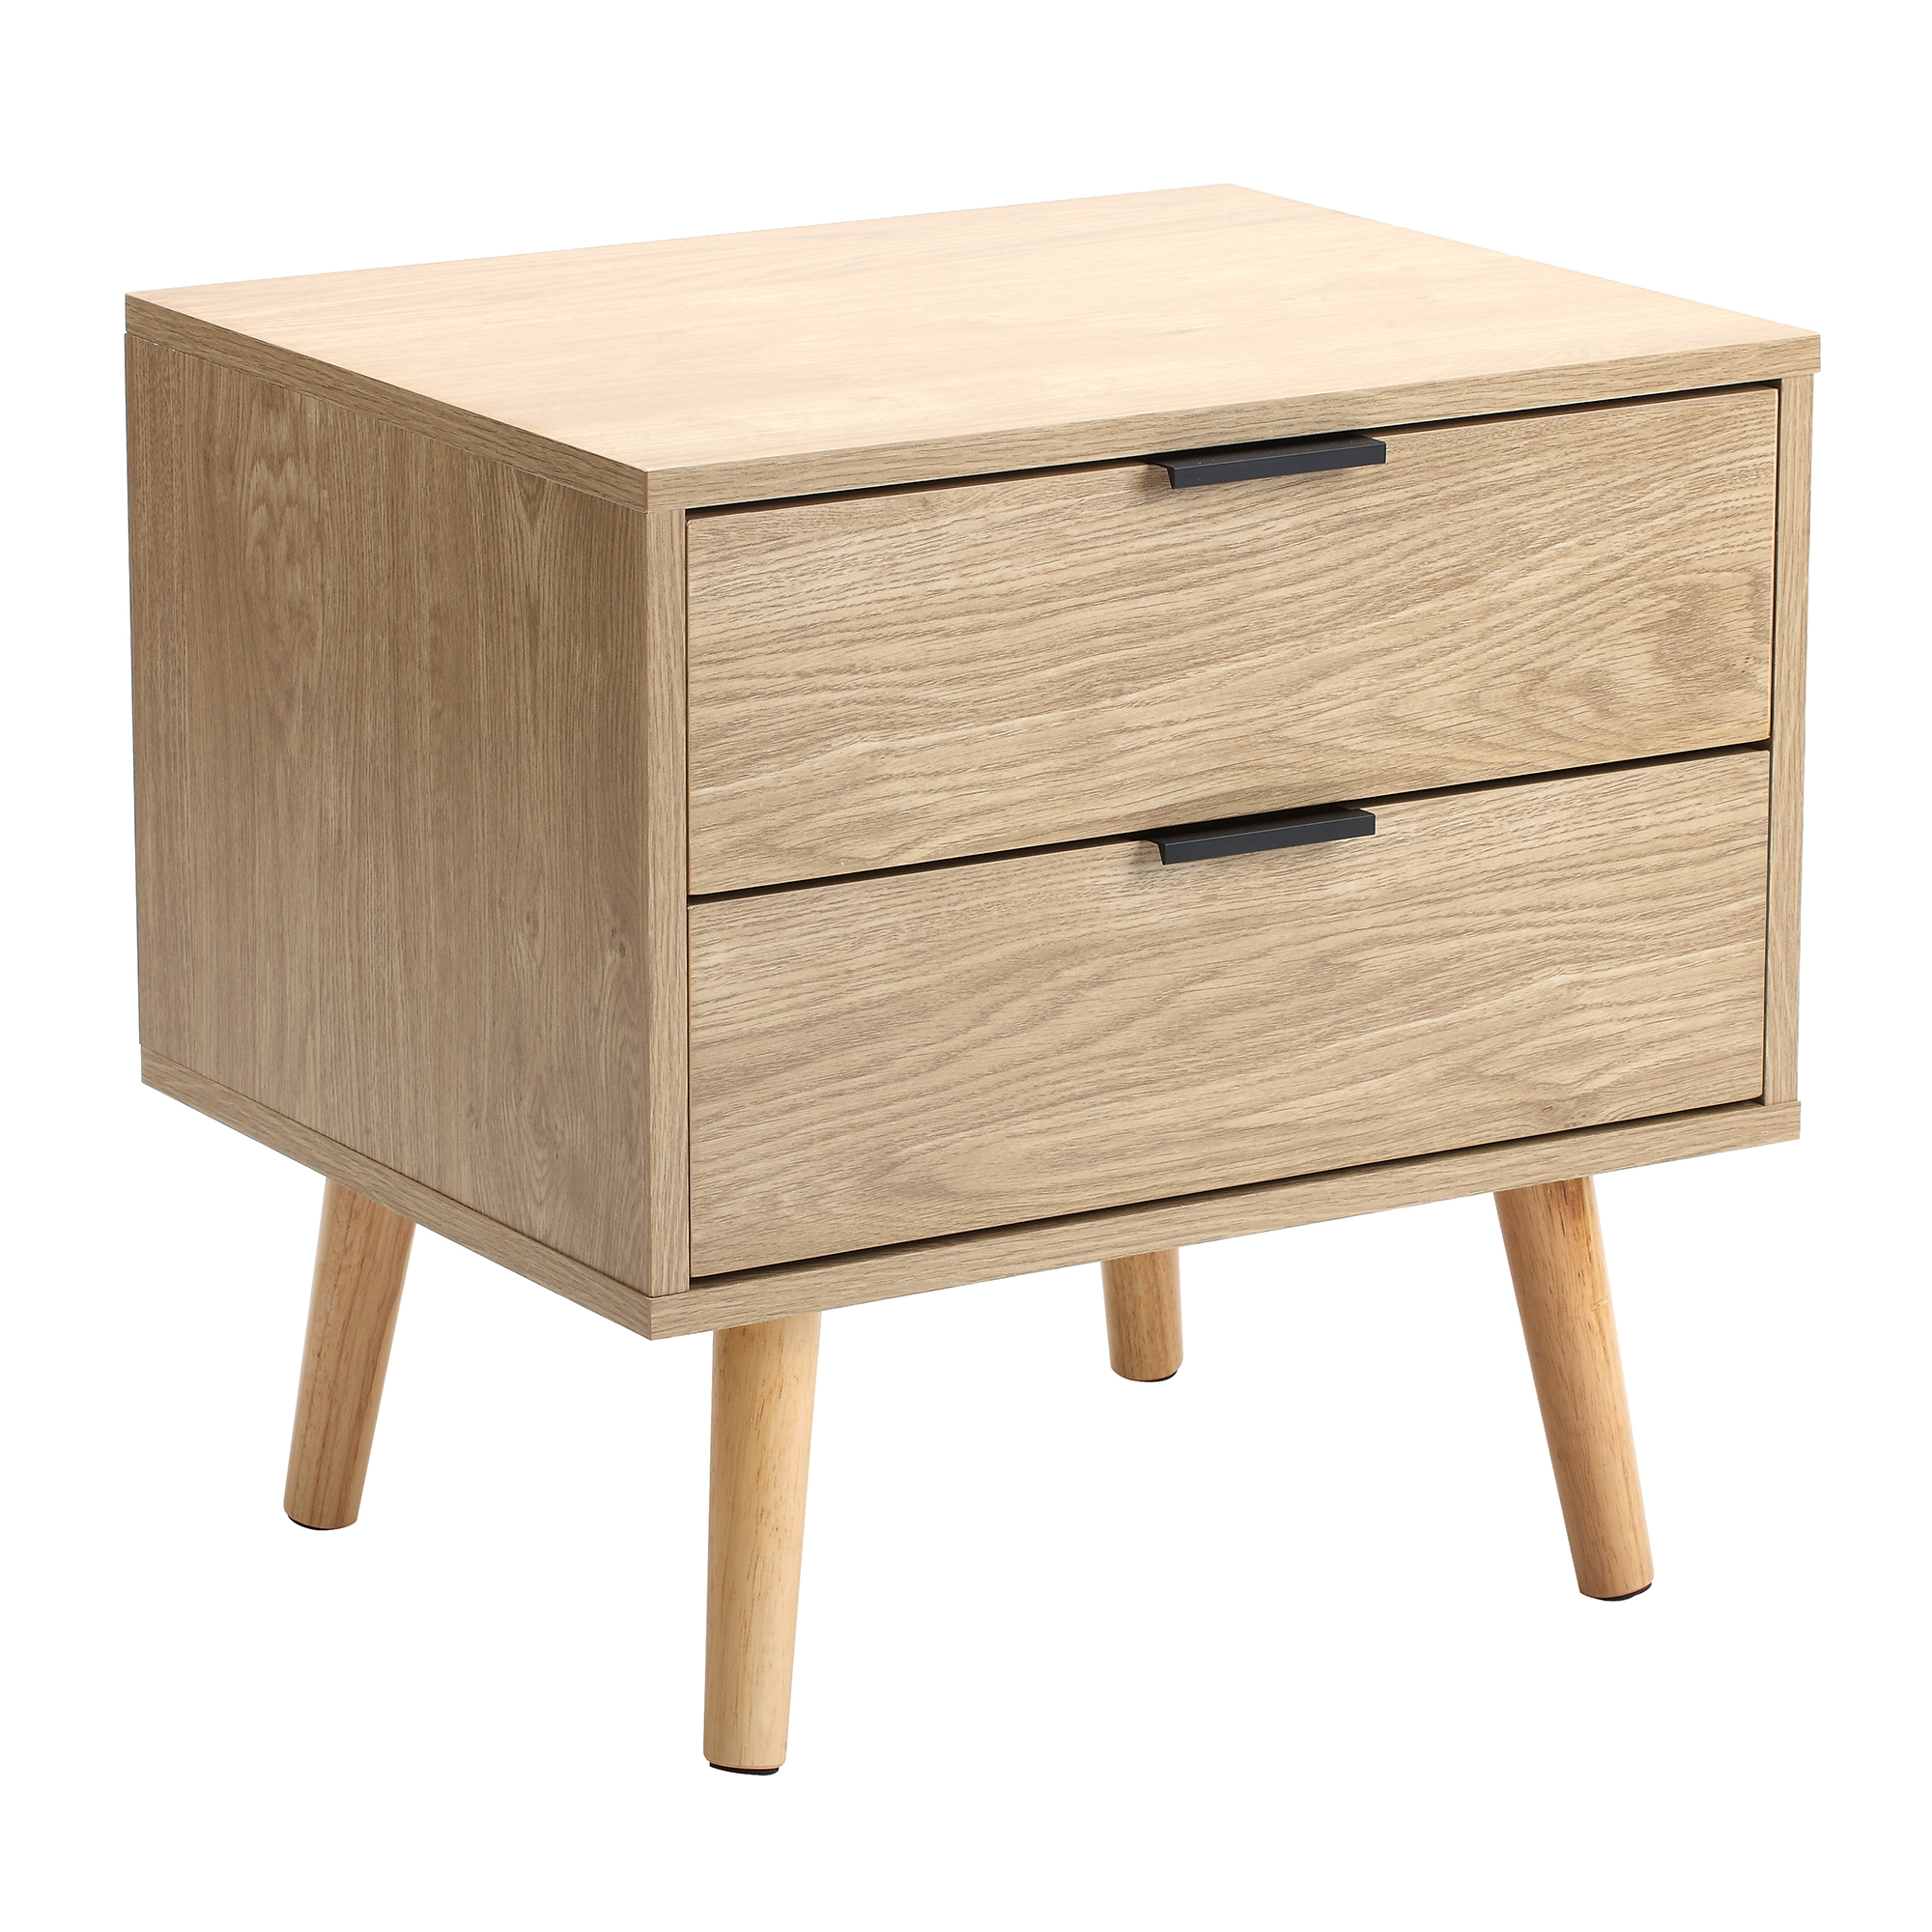 Temple Webster Natural Lars 2 Drawer Bedside Table